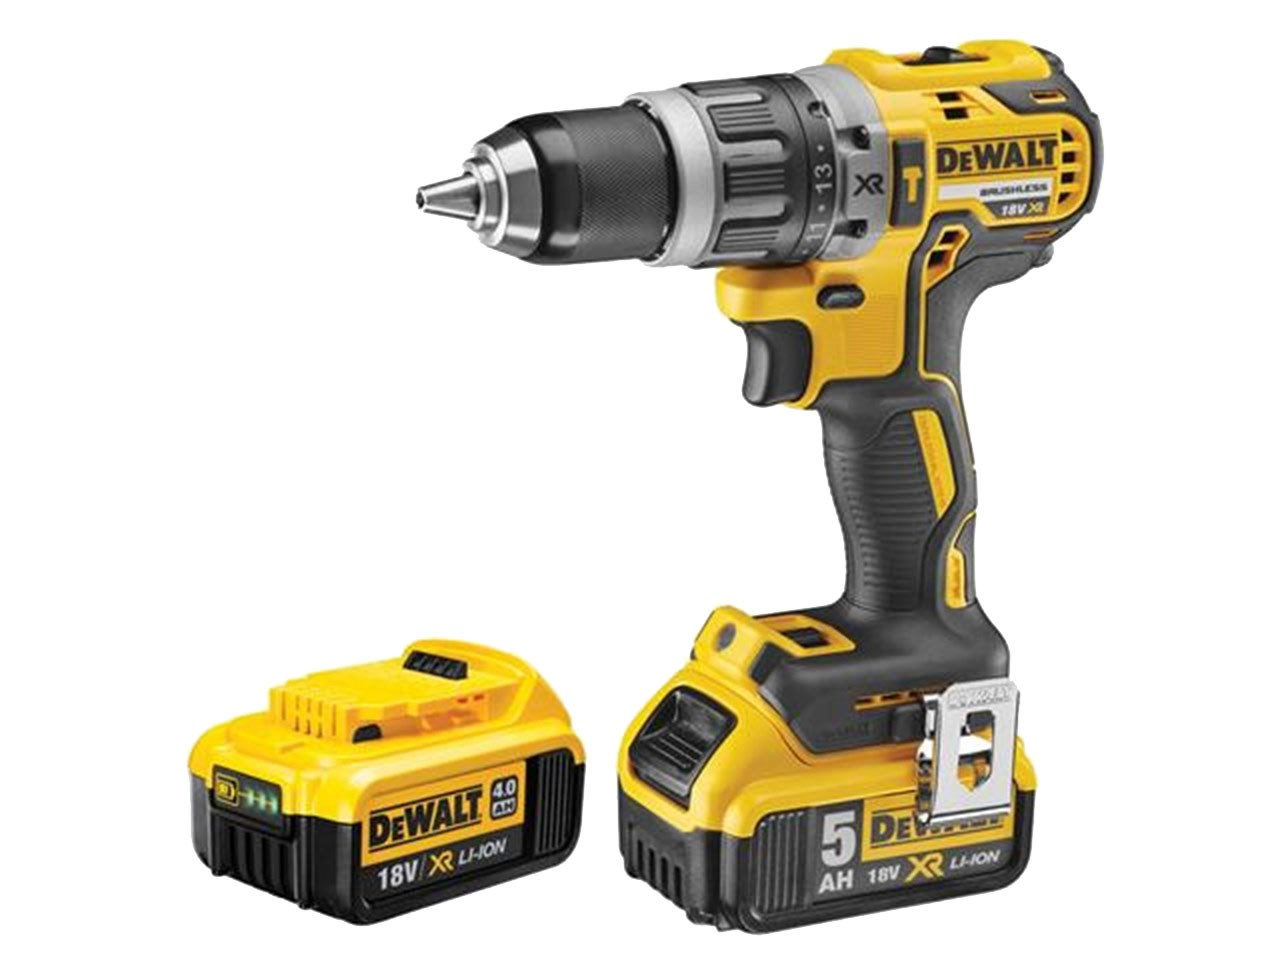 Image result for image of dewalt drill